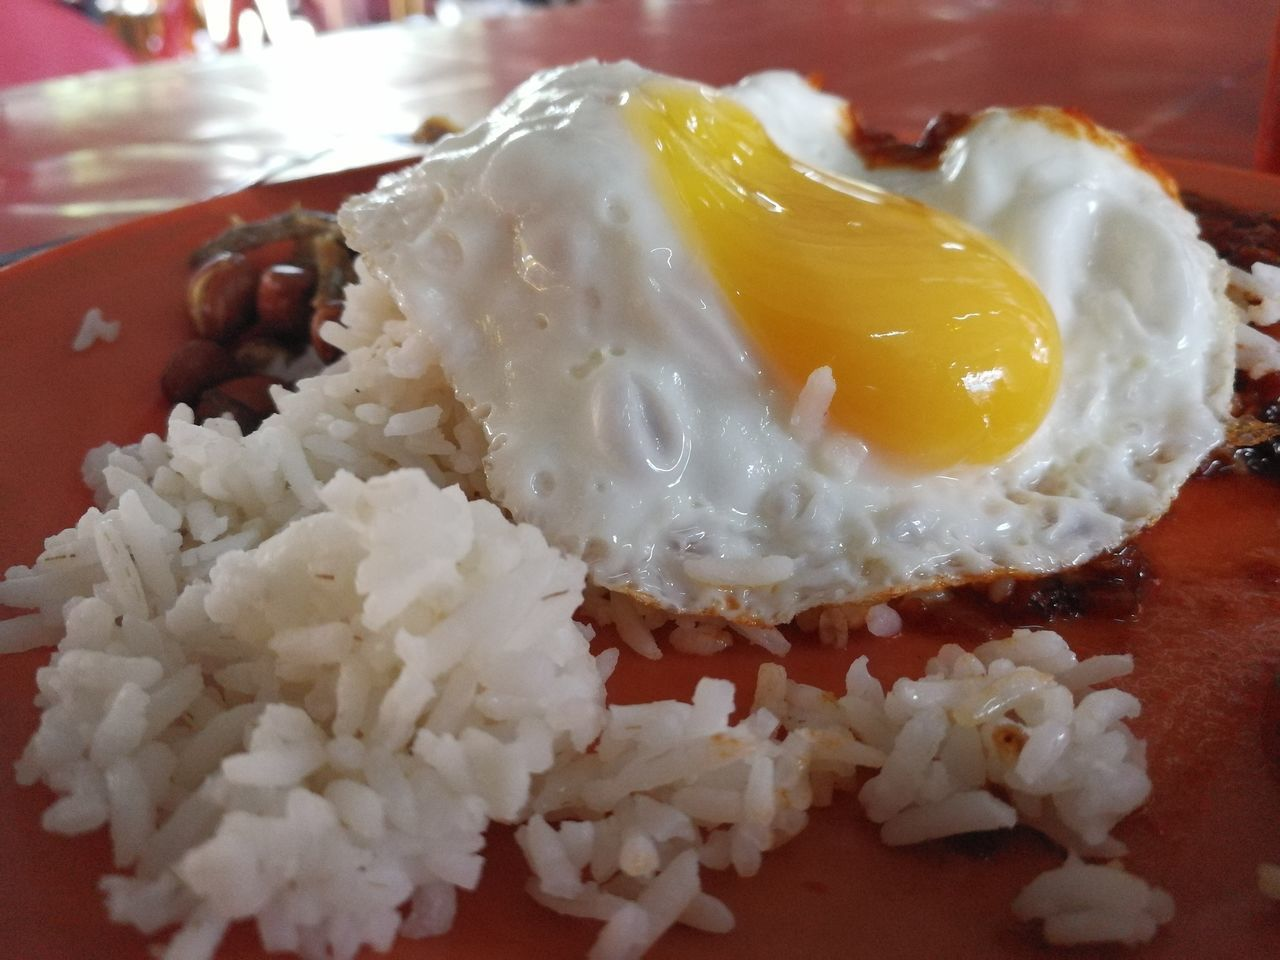 food and drink, food, ready-to-eat, freshness, temptation, indulgence, serving size, indoors, plate, close-up, rice - food staple, no people, egg yolk, unhealthy eating, gourmet, appetizer, homemade, boiled, fried rice, day